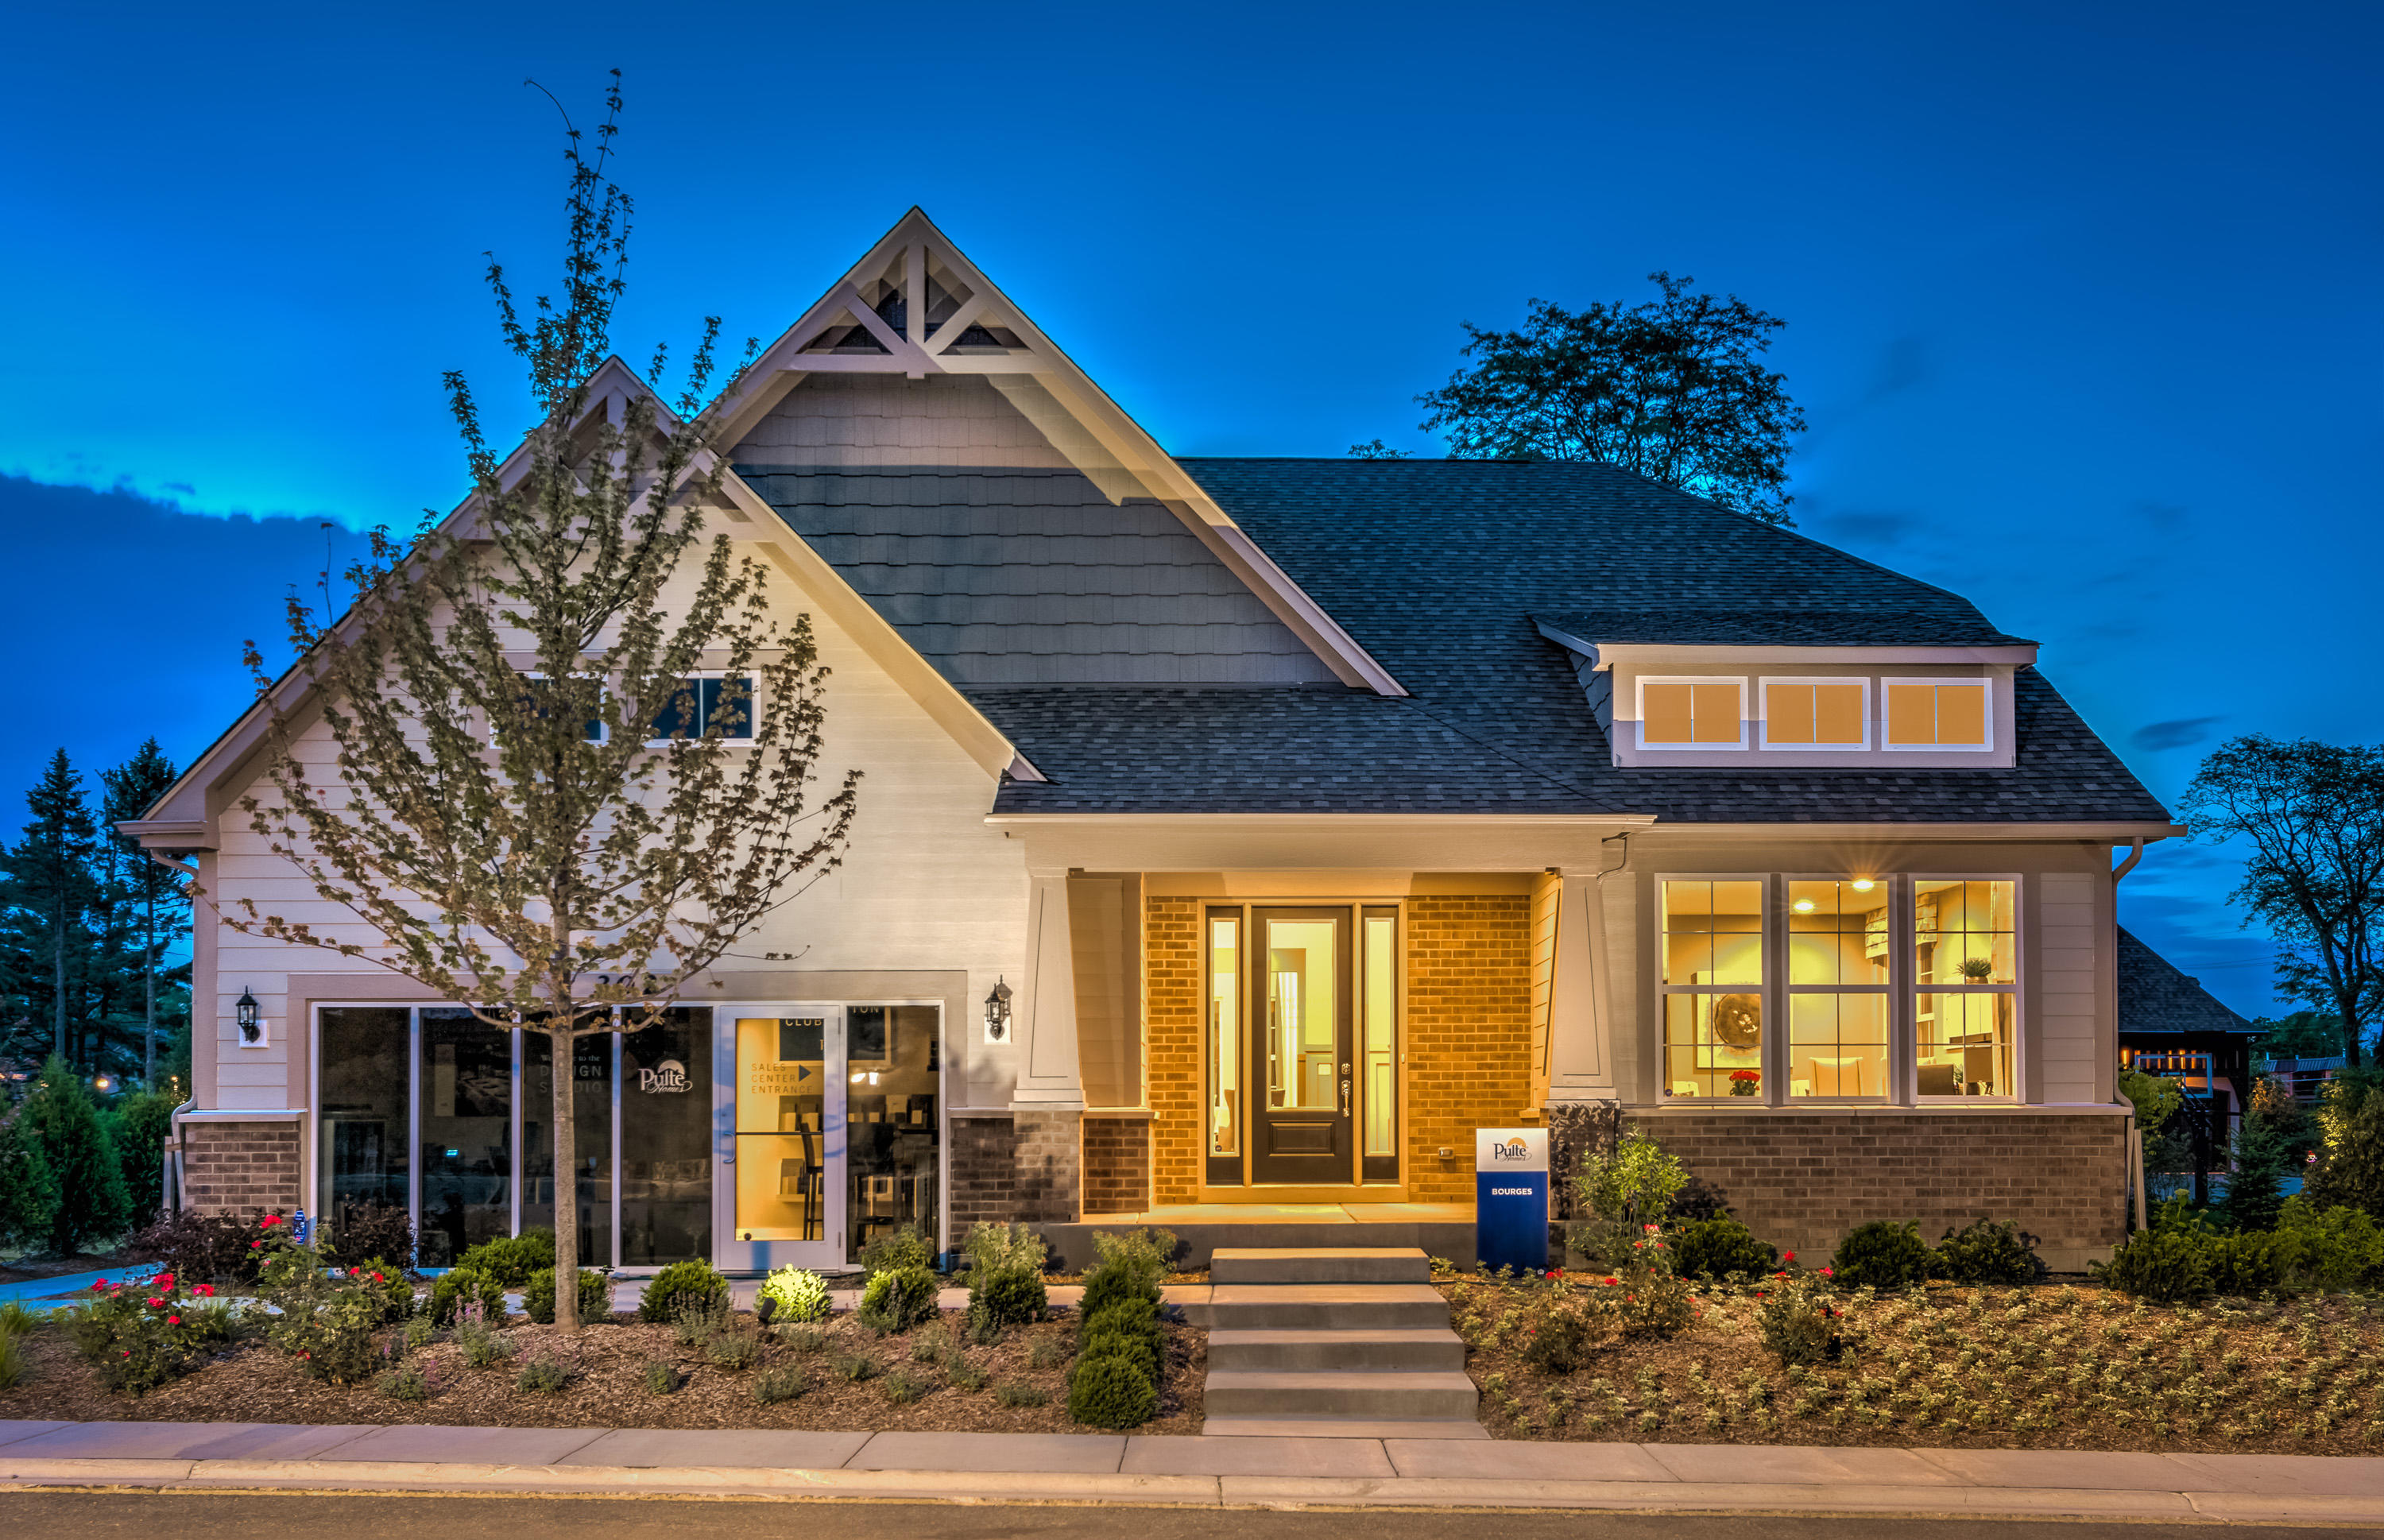 Carrington Club by Pulte Homes image 0